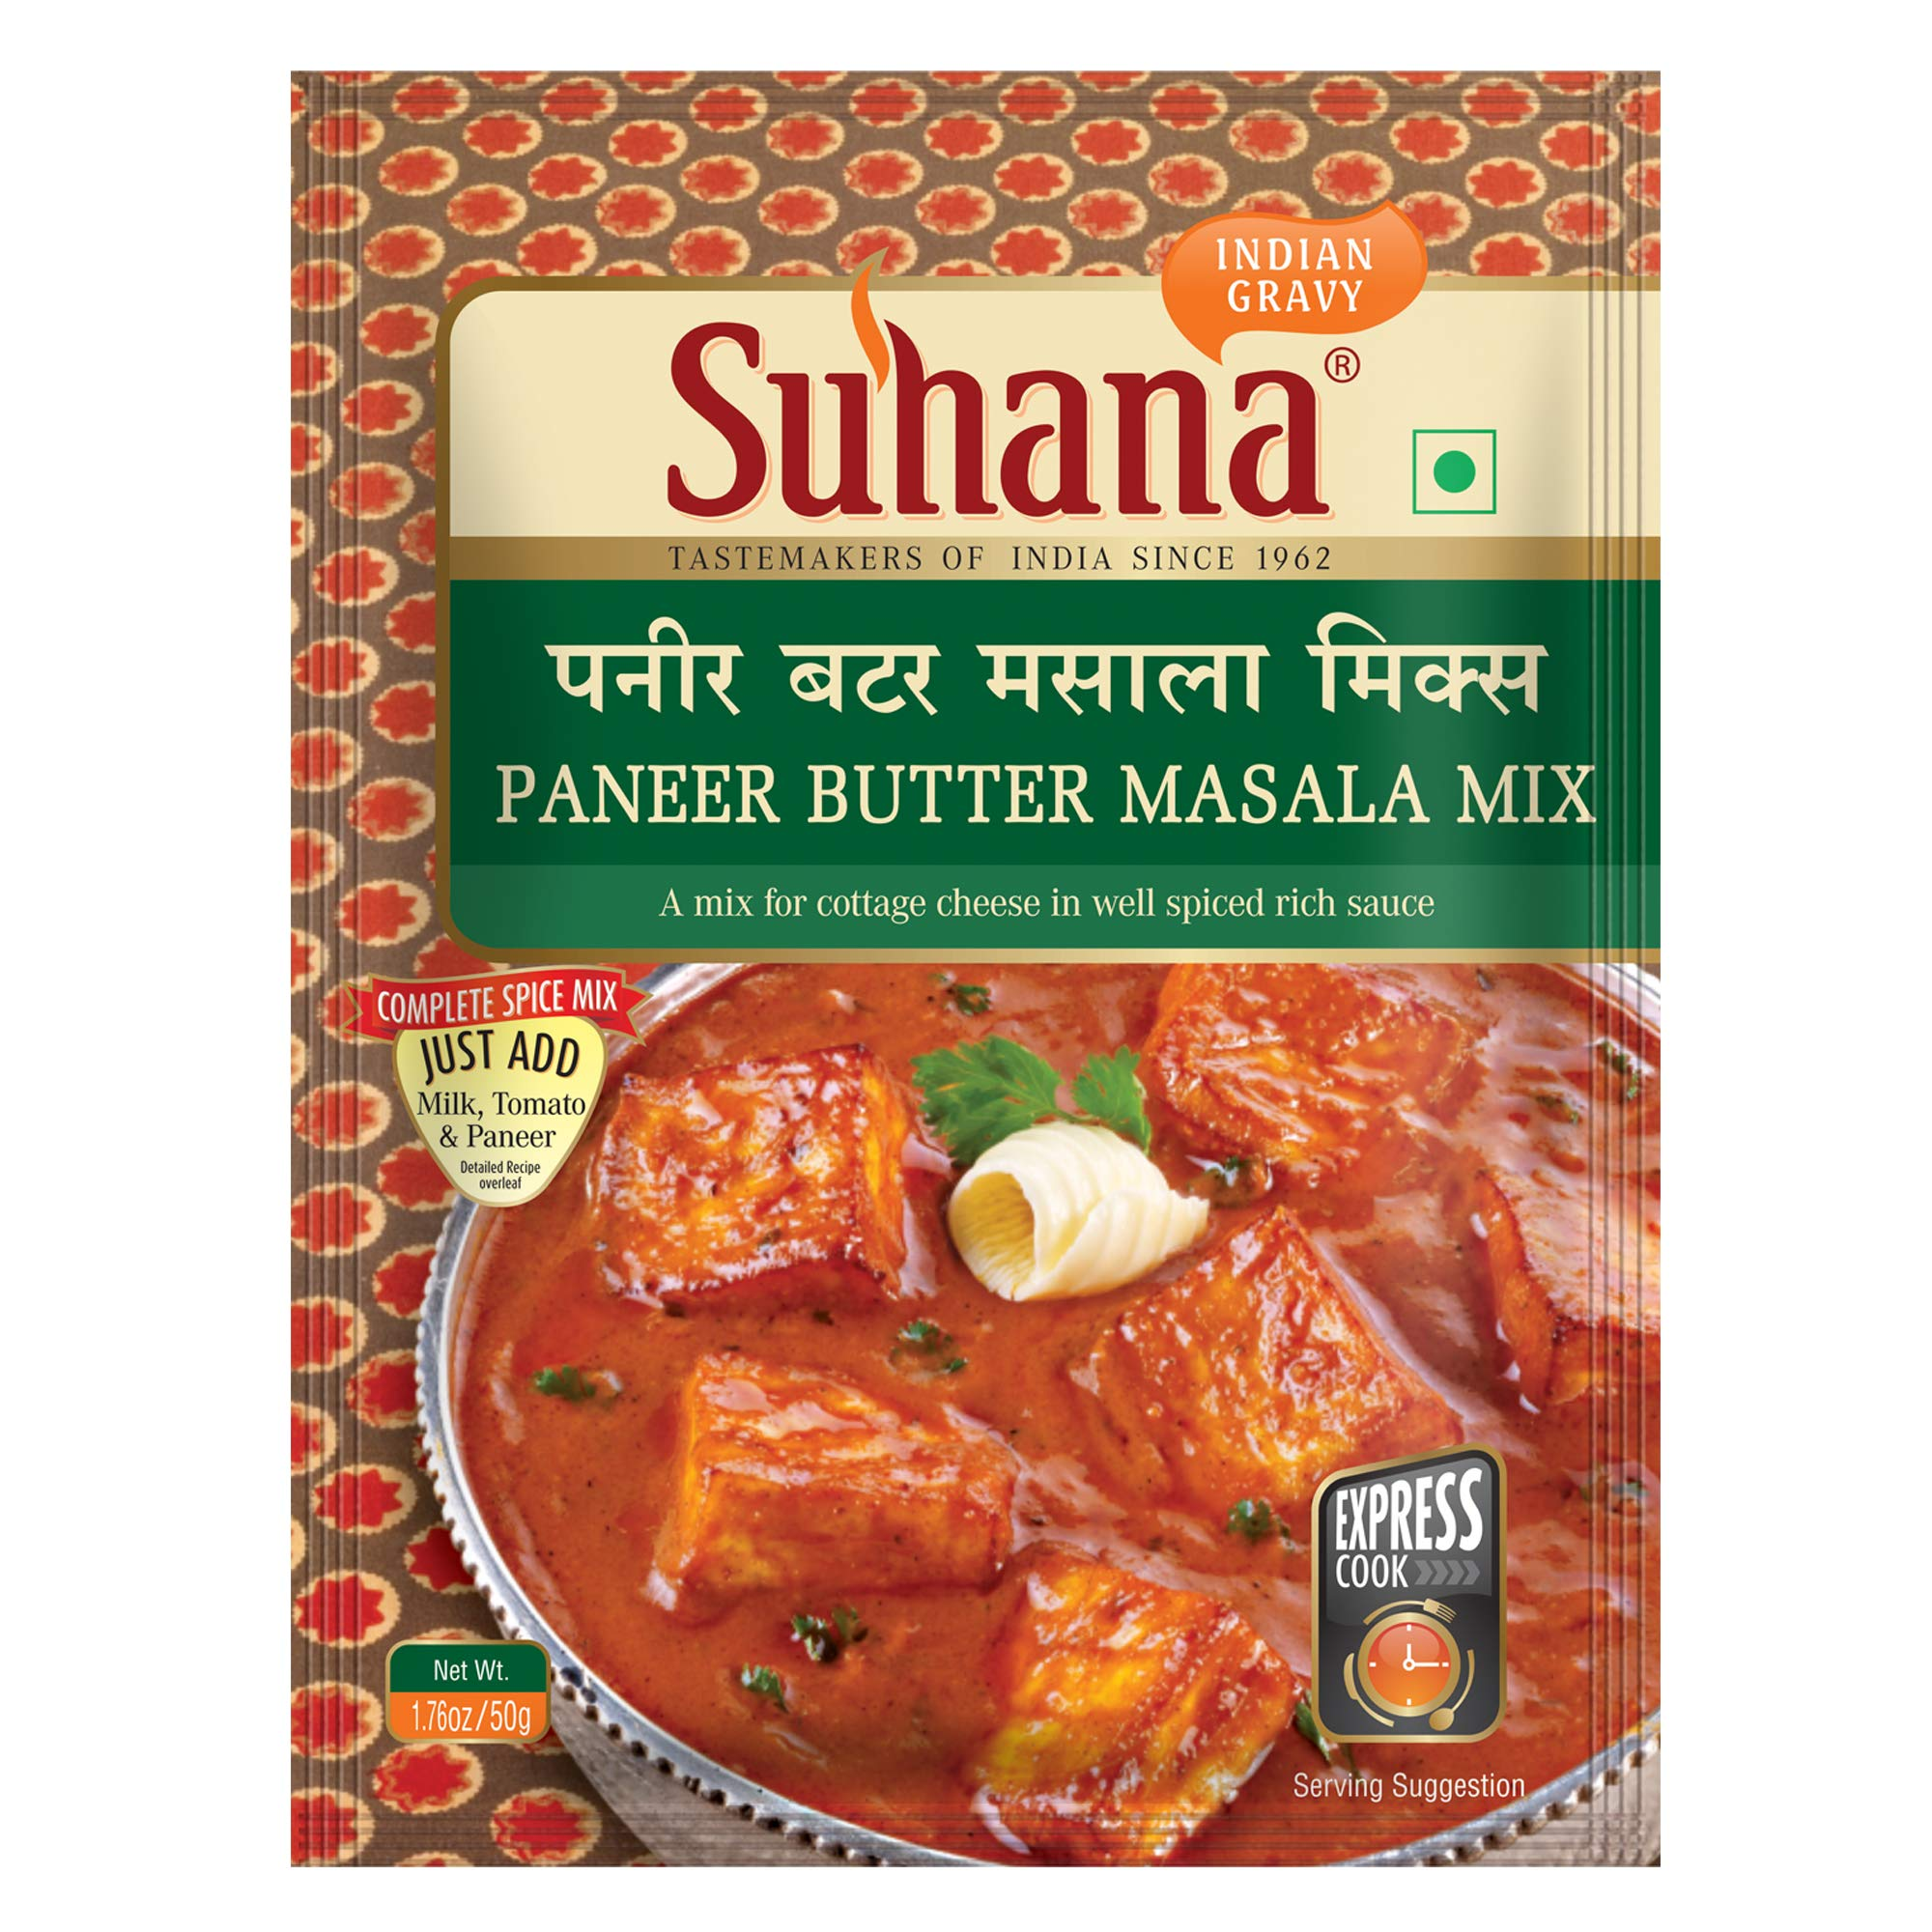 Suhana Paneer Butter Masala 50g Pouch | Spice Mix | Easy to Cook | Pack of 3